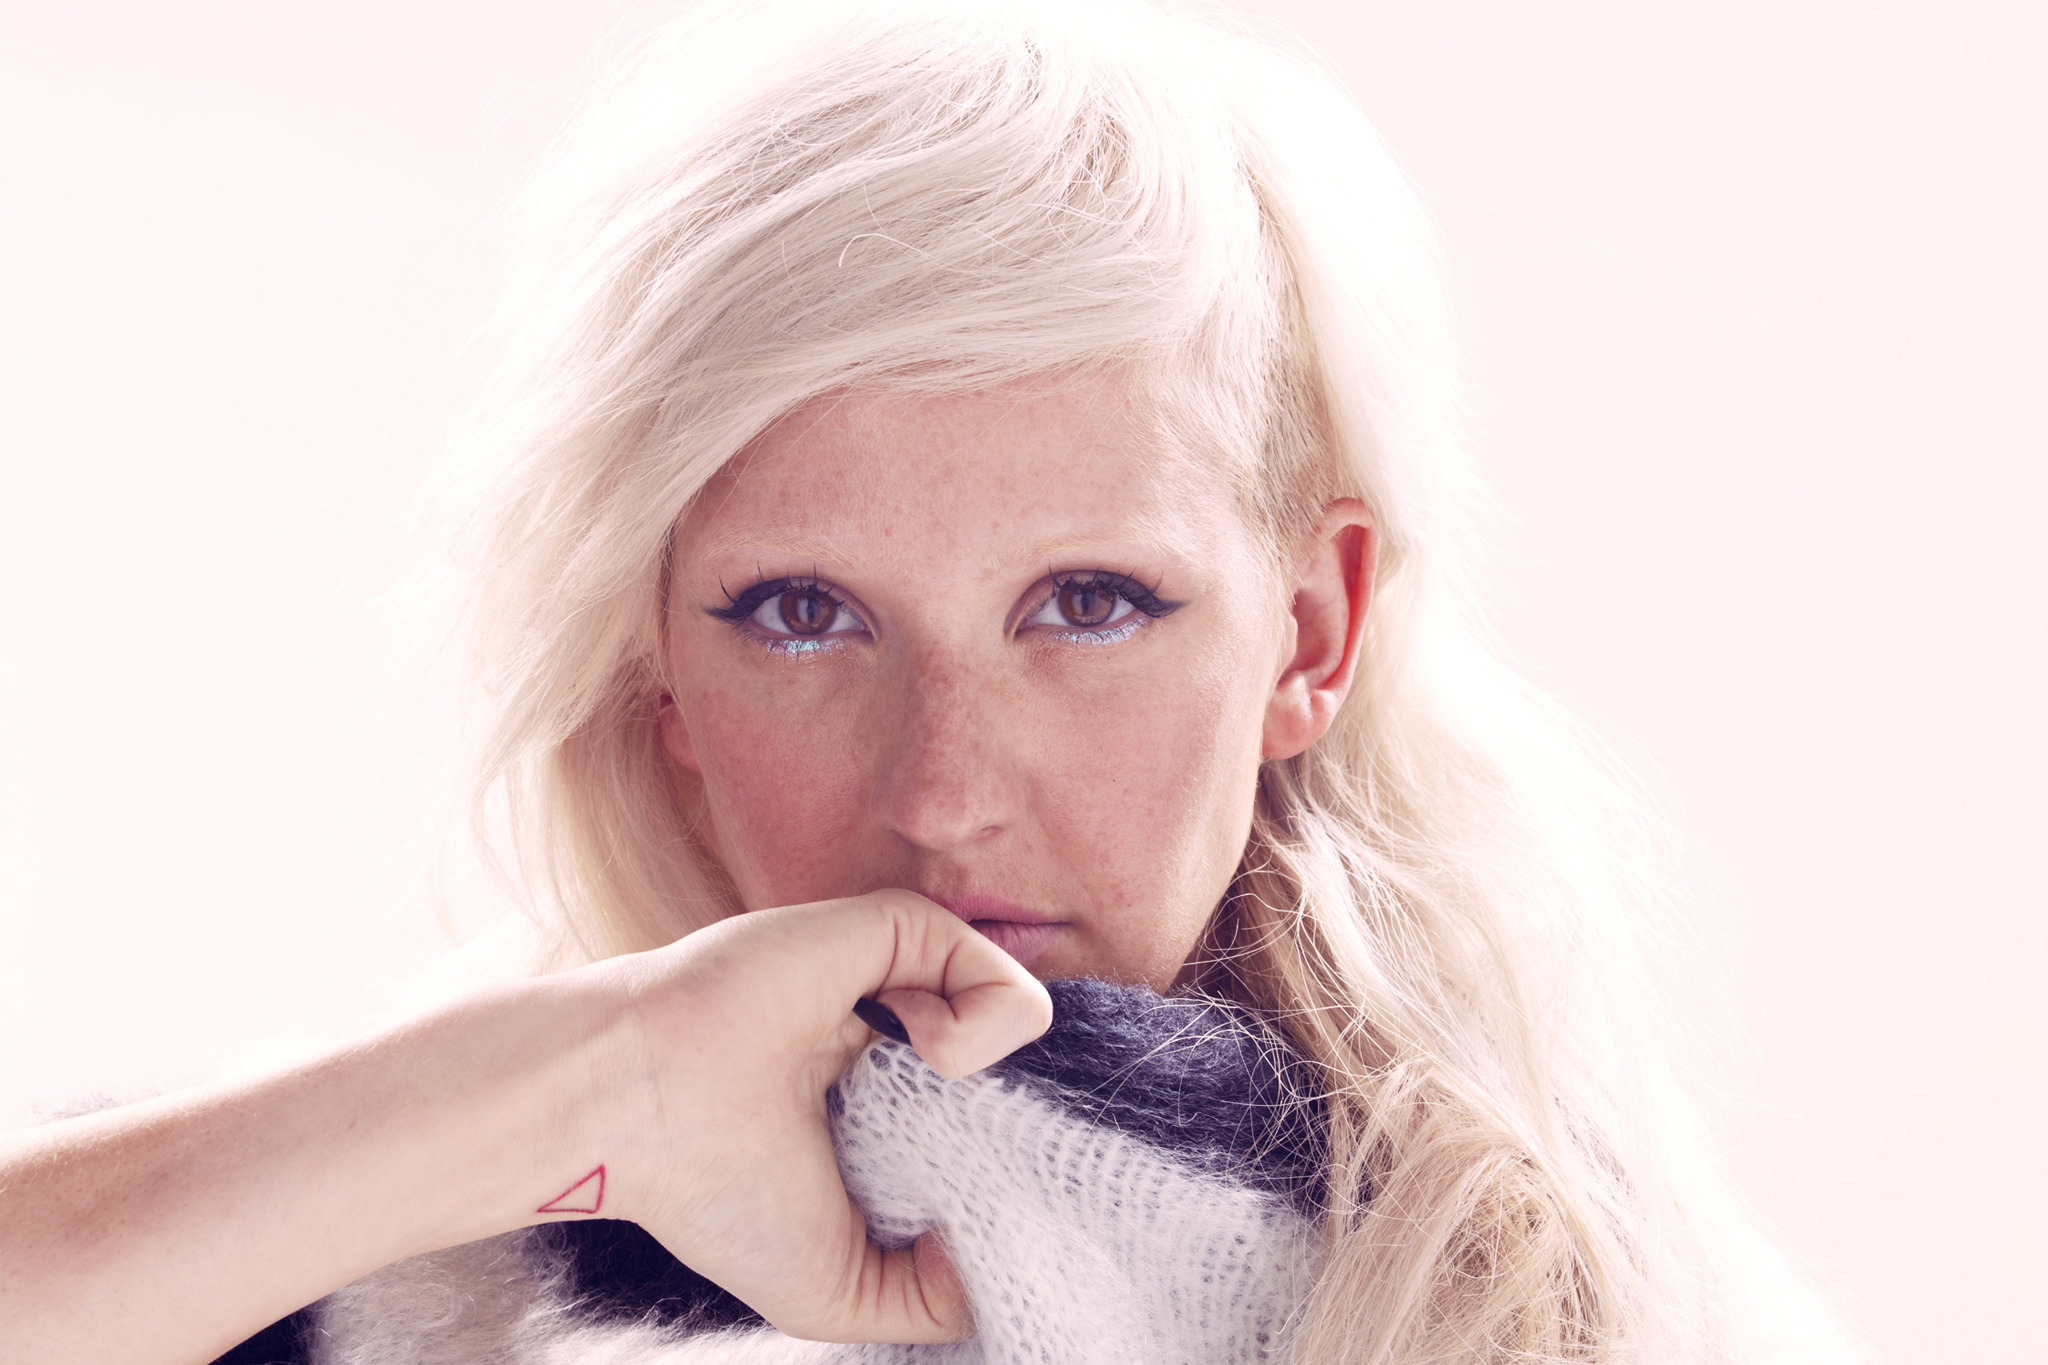 18f88d33738 Steal her style  Singer and fashion icon Ellie Goulding